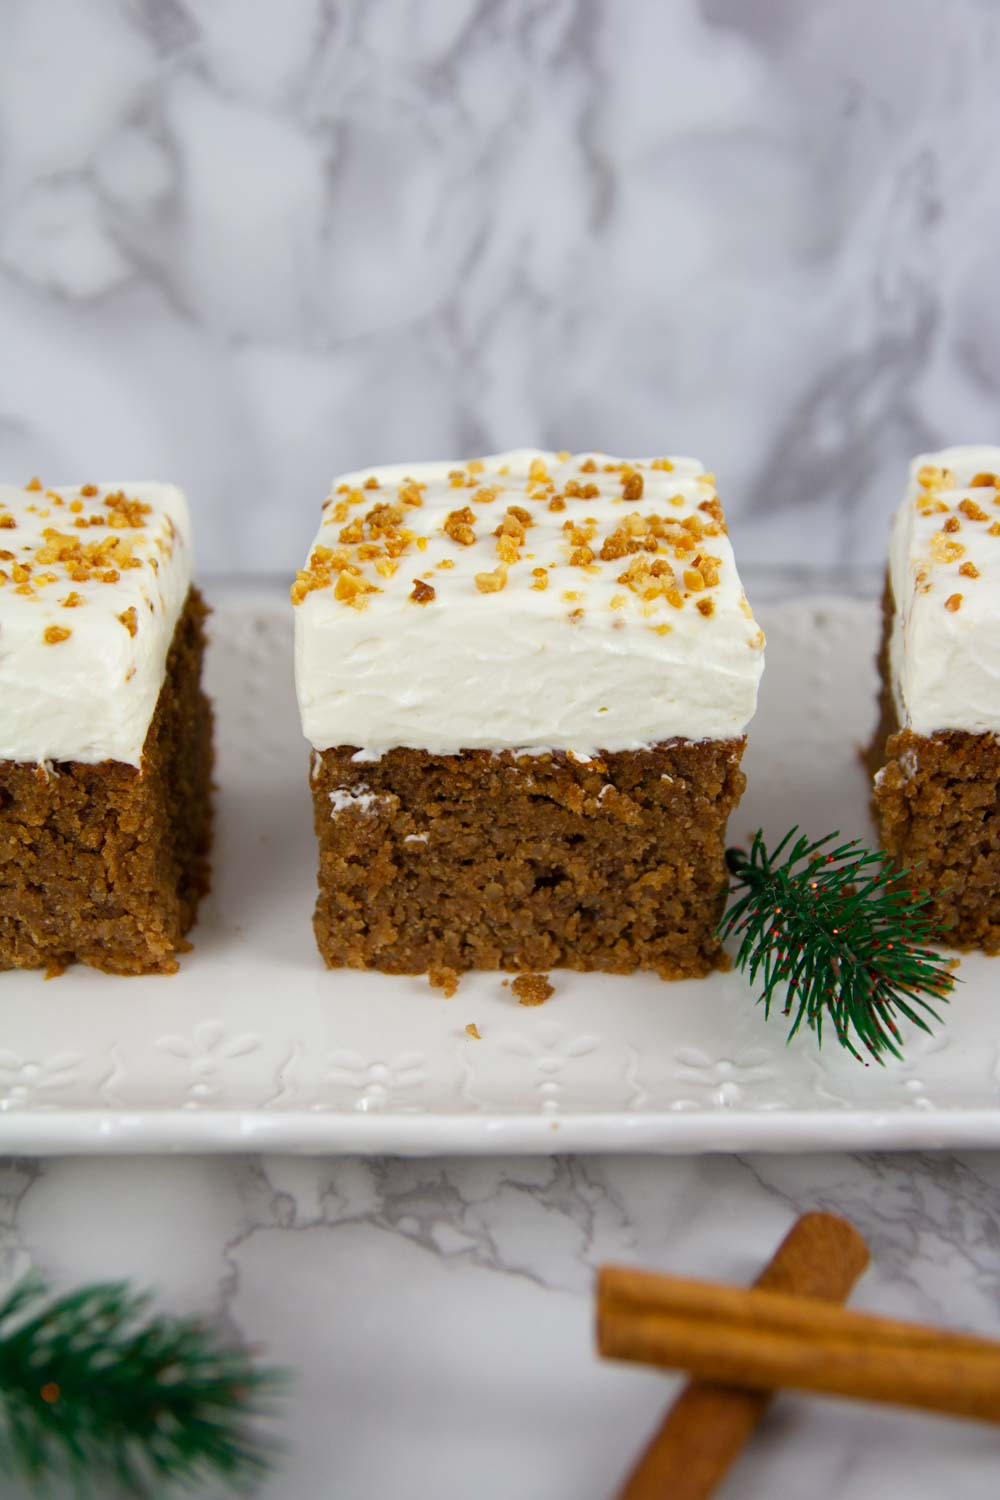 This deeply spiced and moist gingerbread cake is complete with swirls of mascarpone cheese frosting. A keto gingerbread dessert perfect for Holidays!